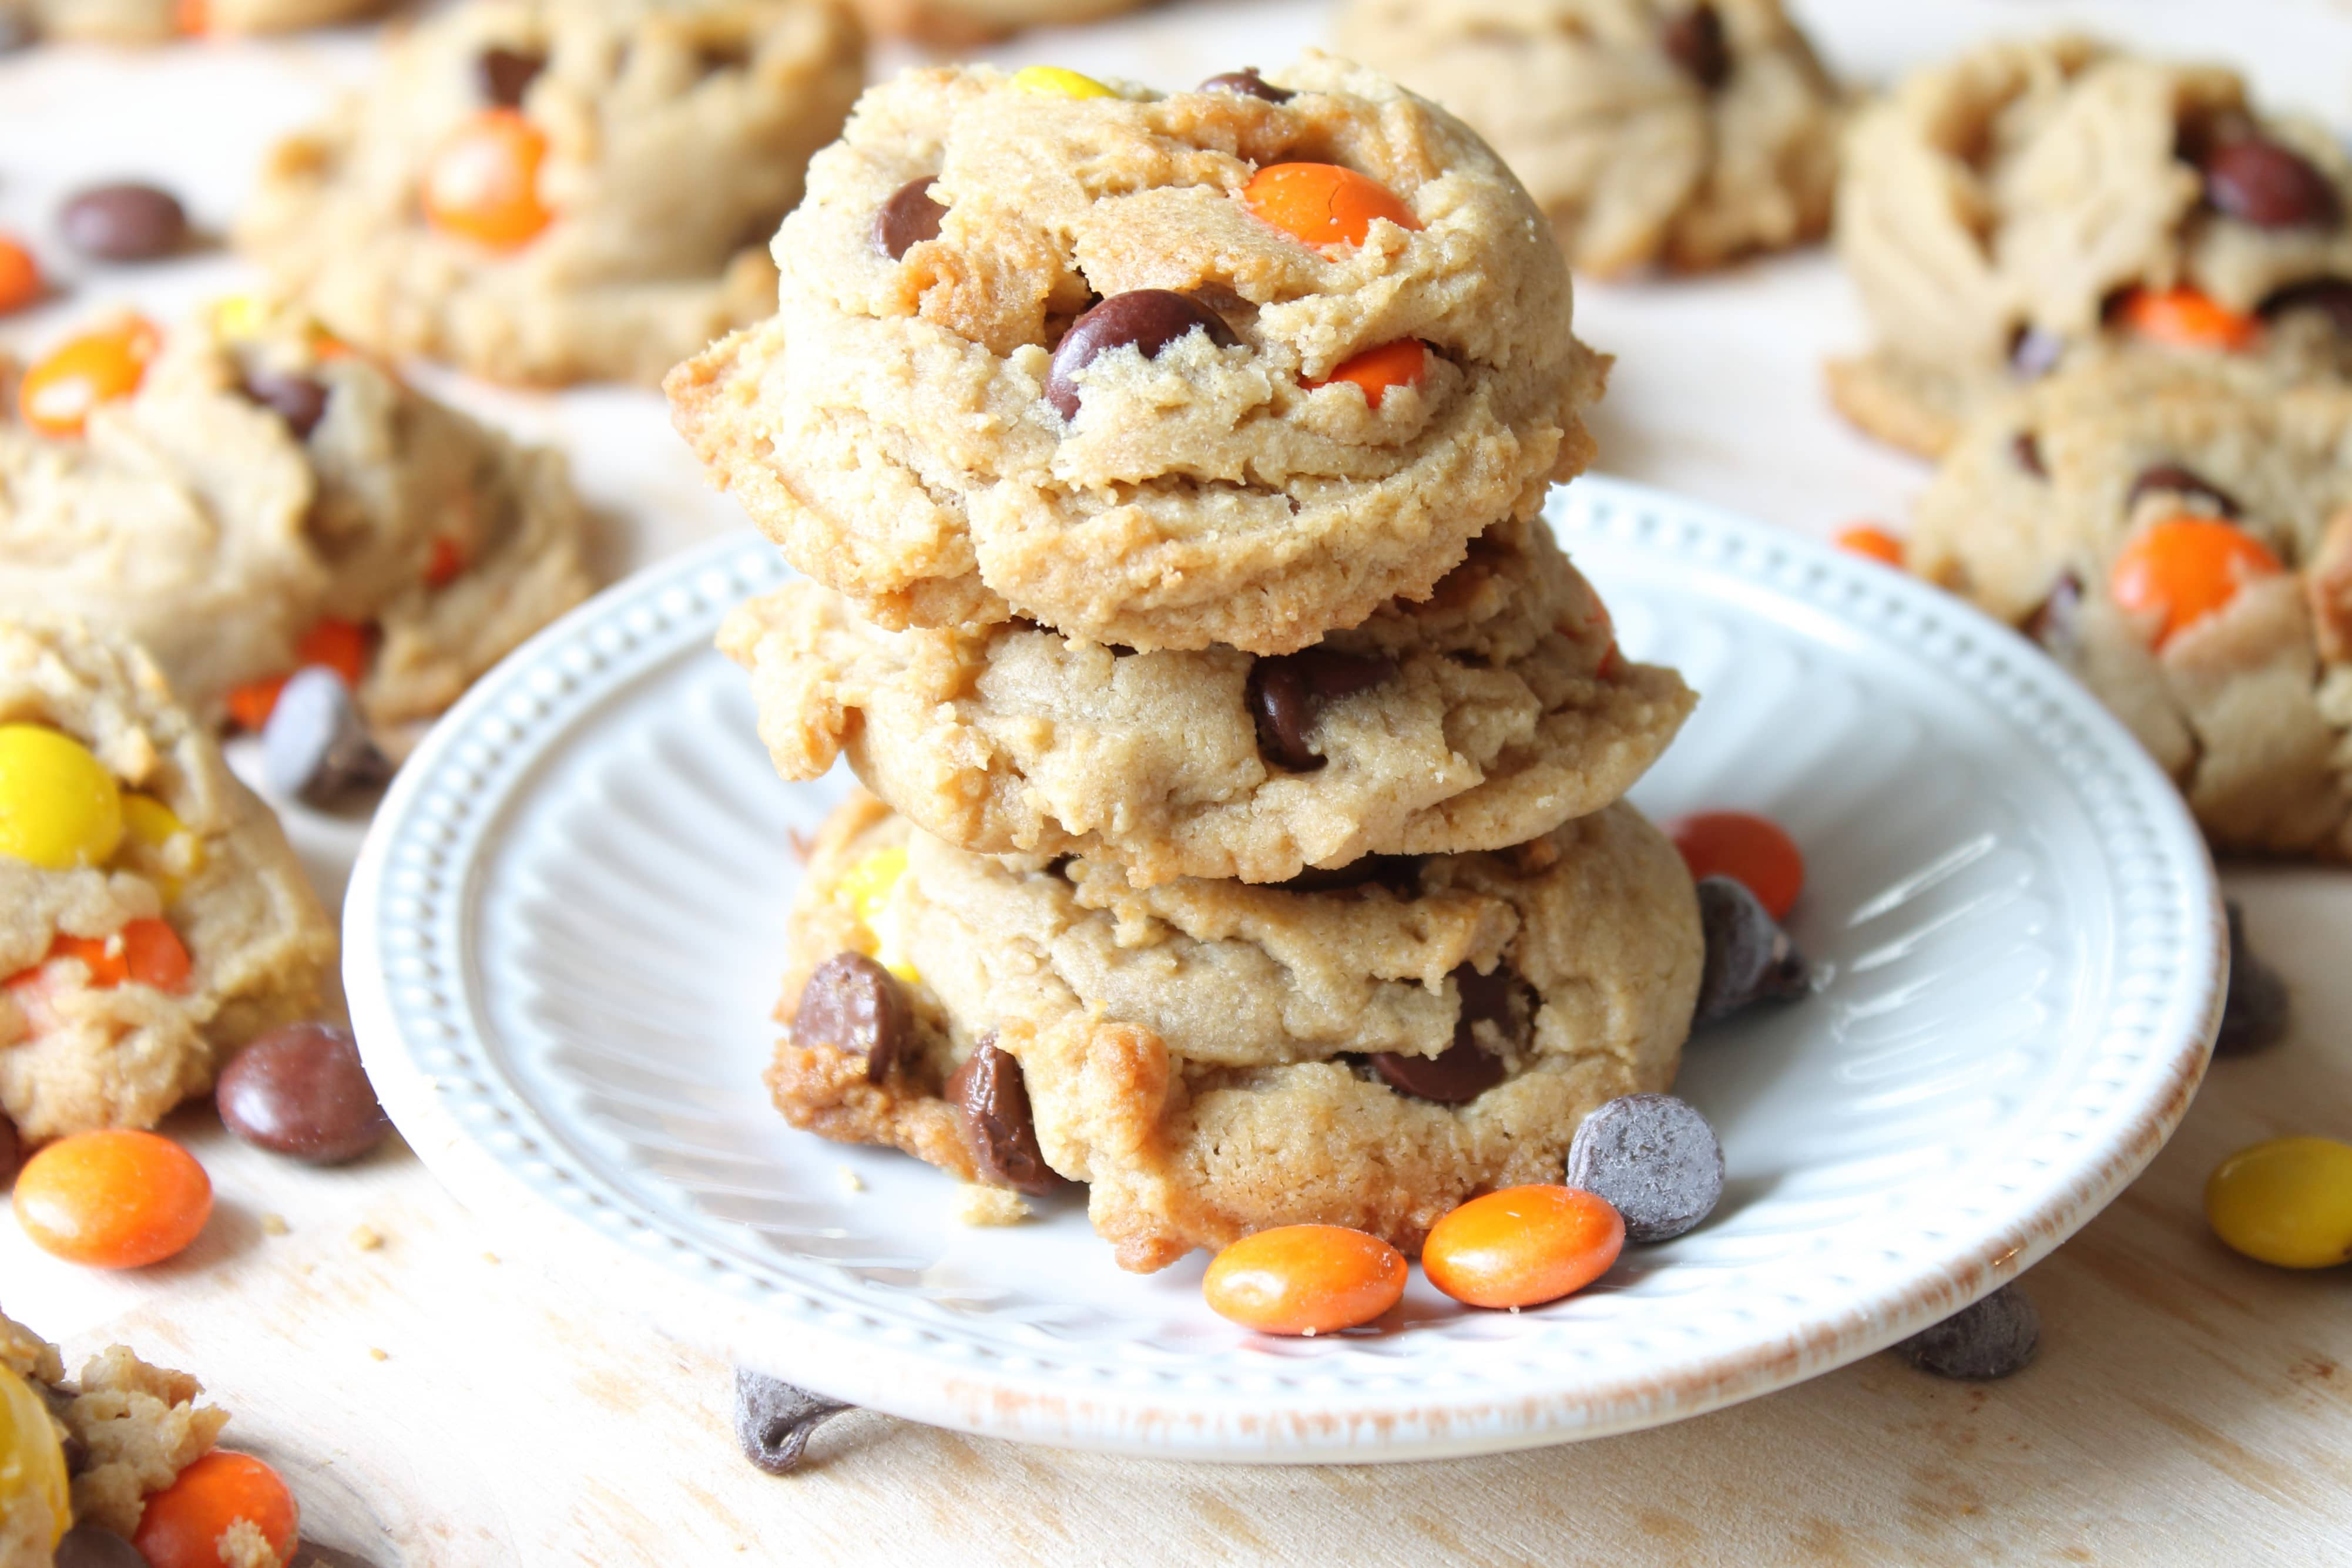 Stack of Reese's Pieces Peanut Butter Cookies